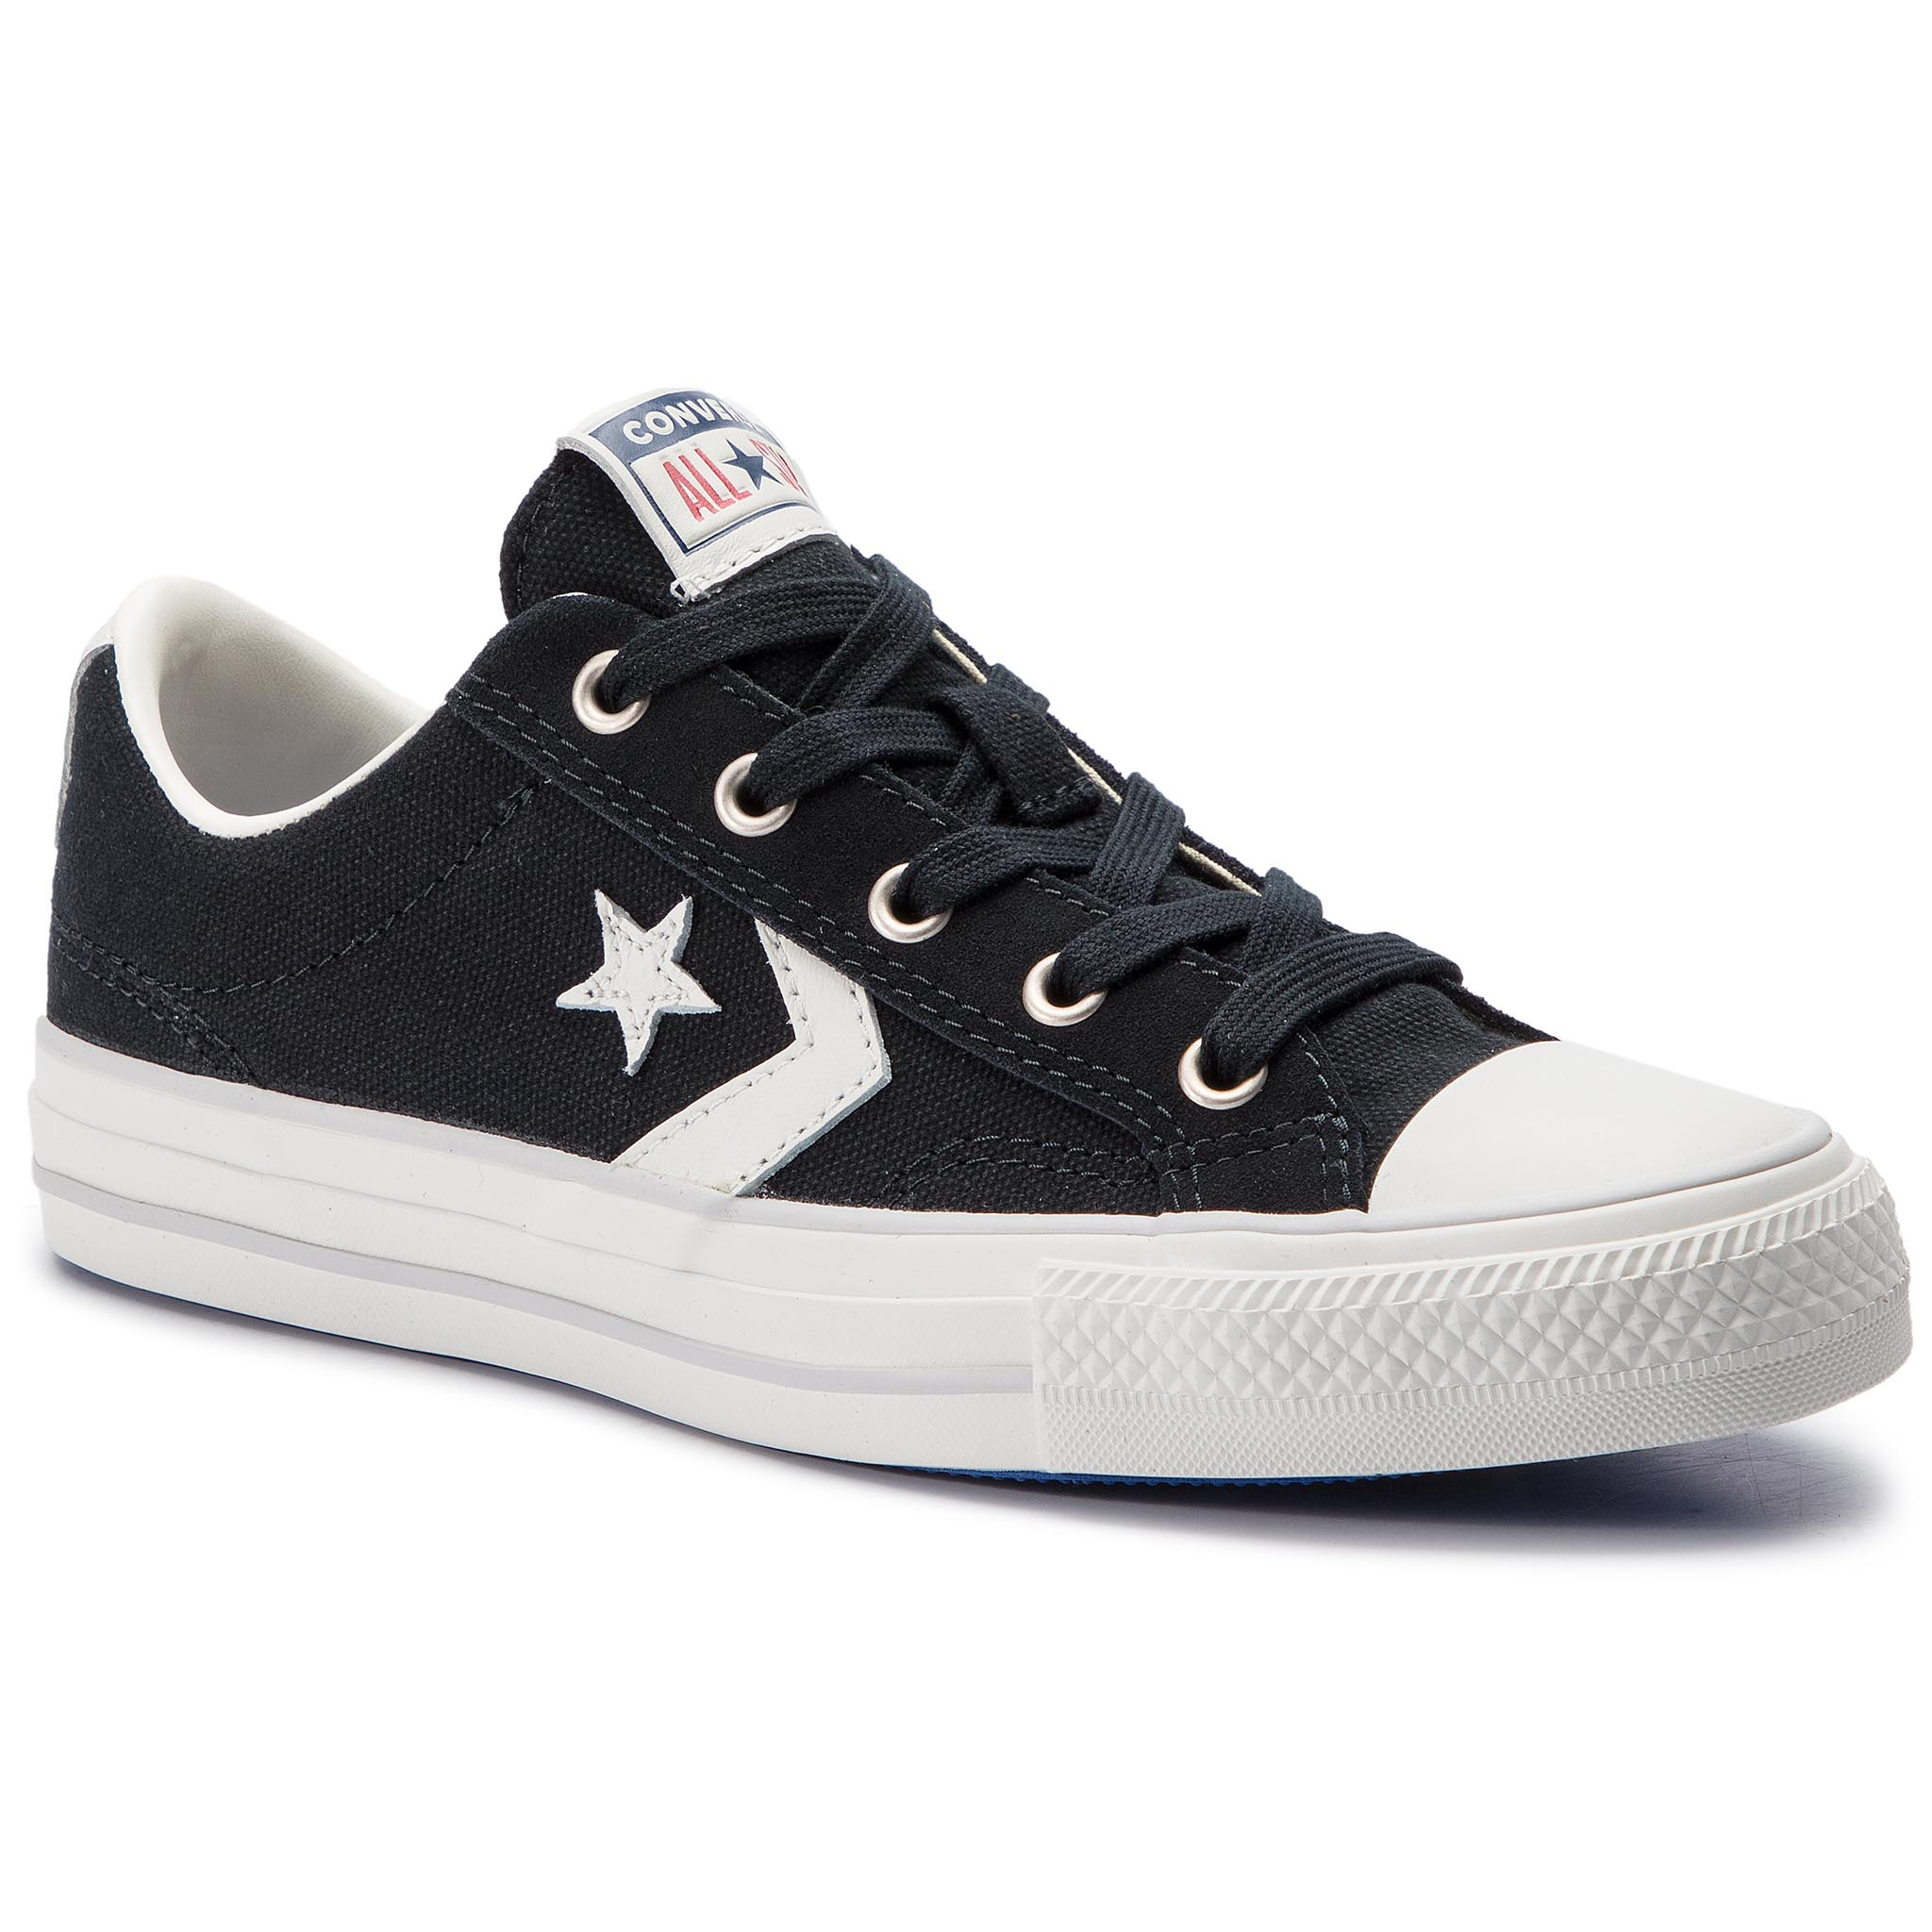 2bf2dd62d011 Sneakers CONVERSE - Ctas Hi 163980C Gym Red White Black - Sneakers ...